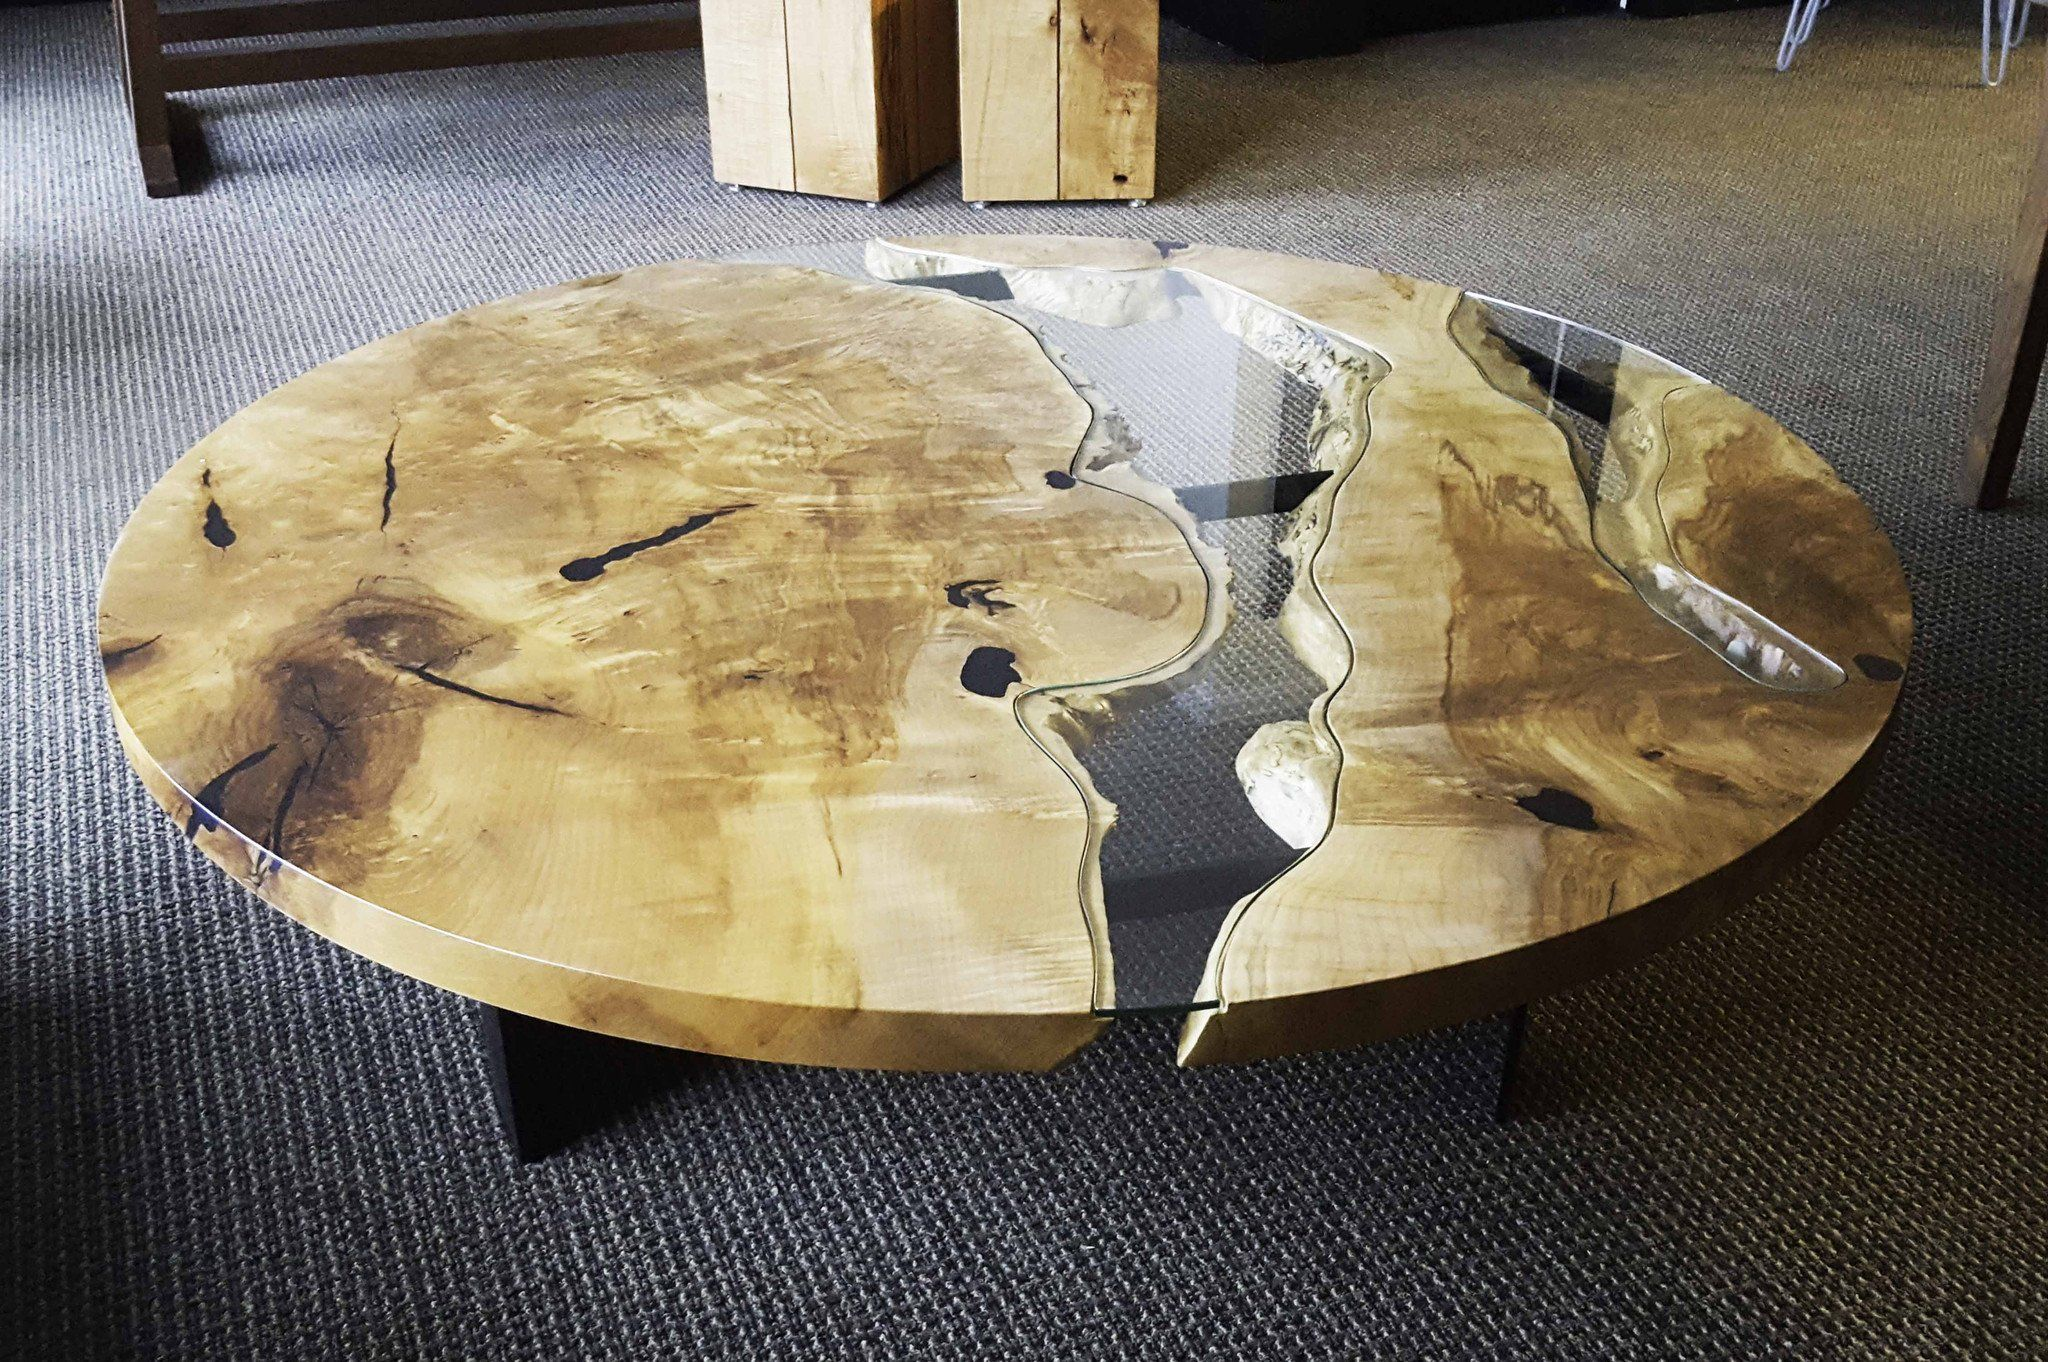 River Run Coffee Table By Live Edge Design Coffee Table Table Cool Things To Build [ 1362 x 2048 Pixel ]